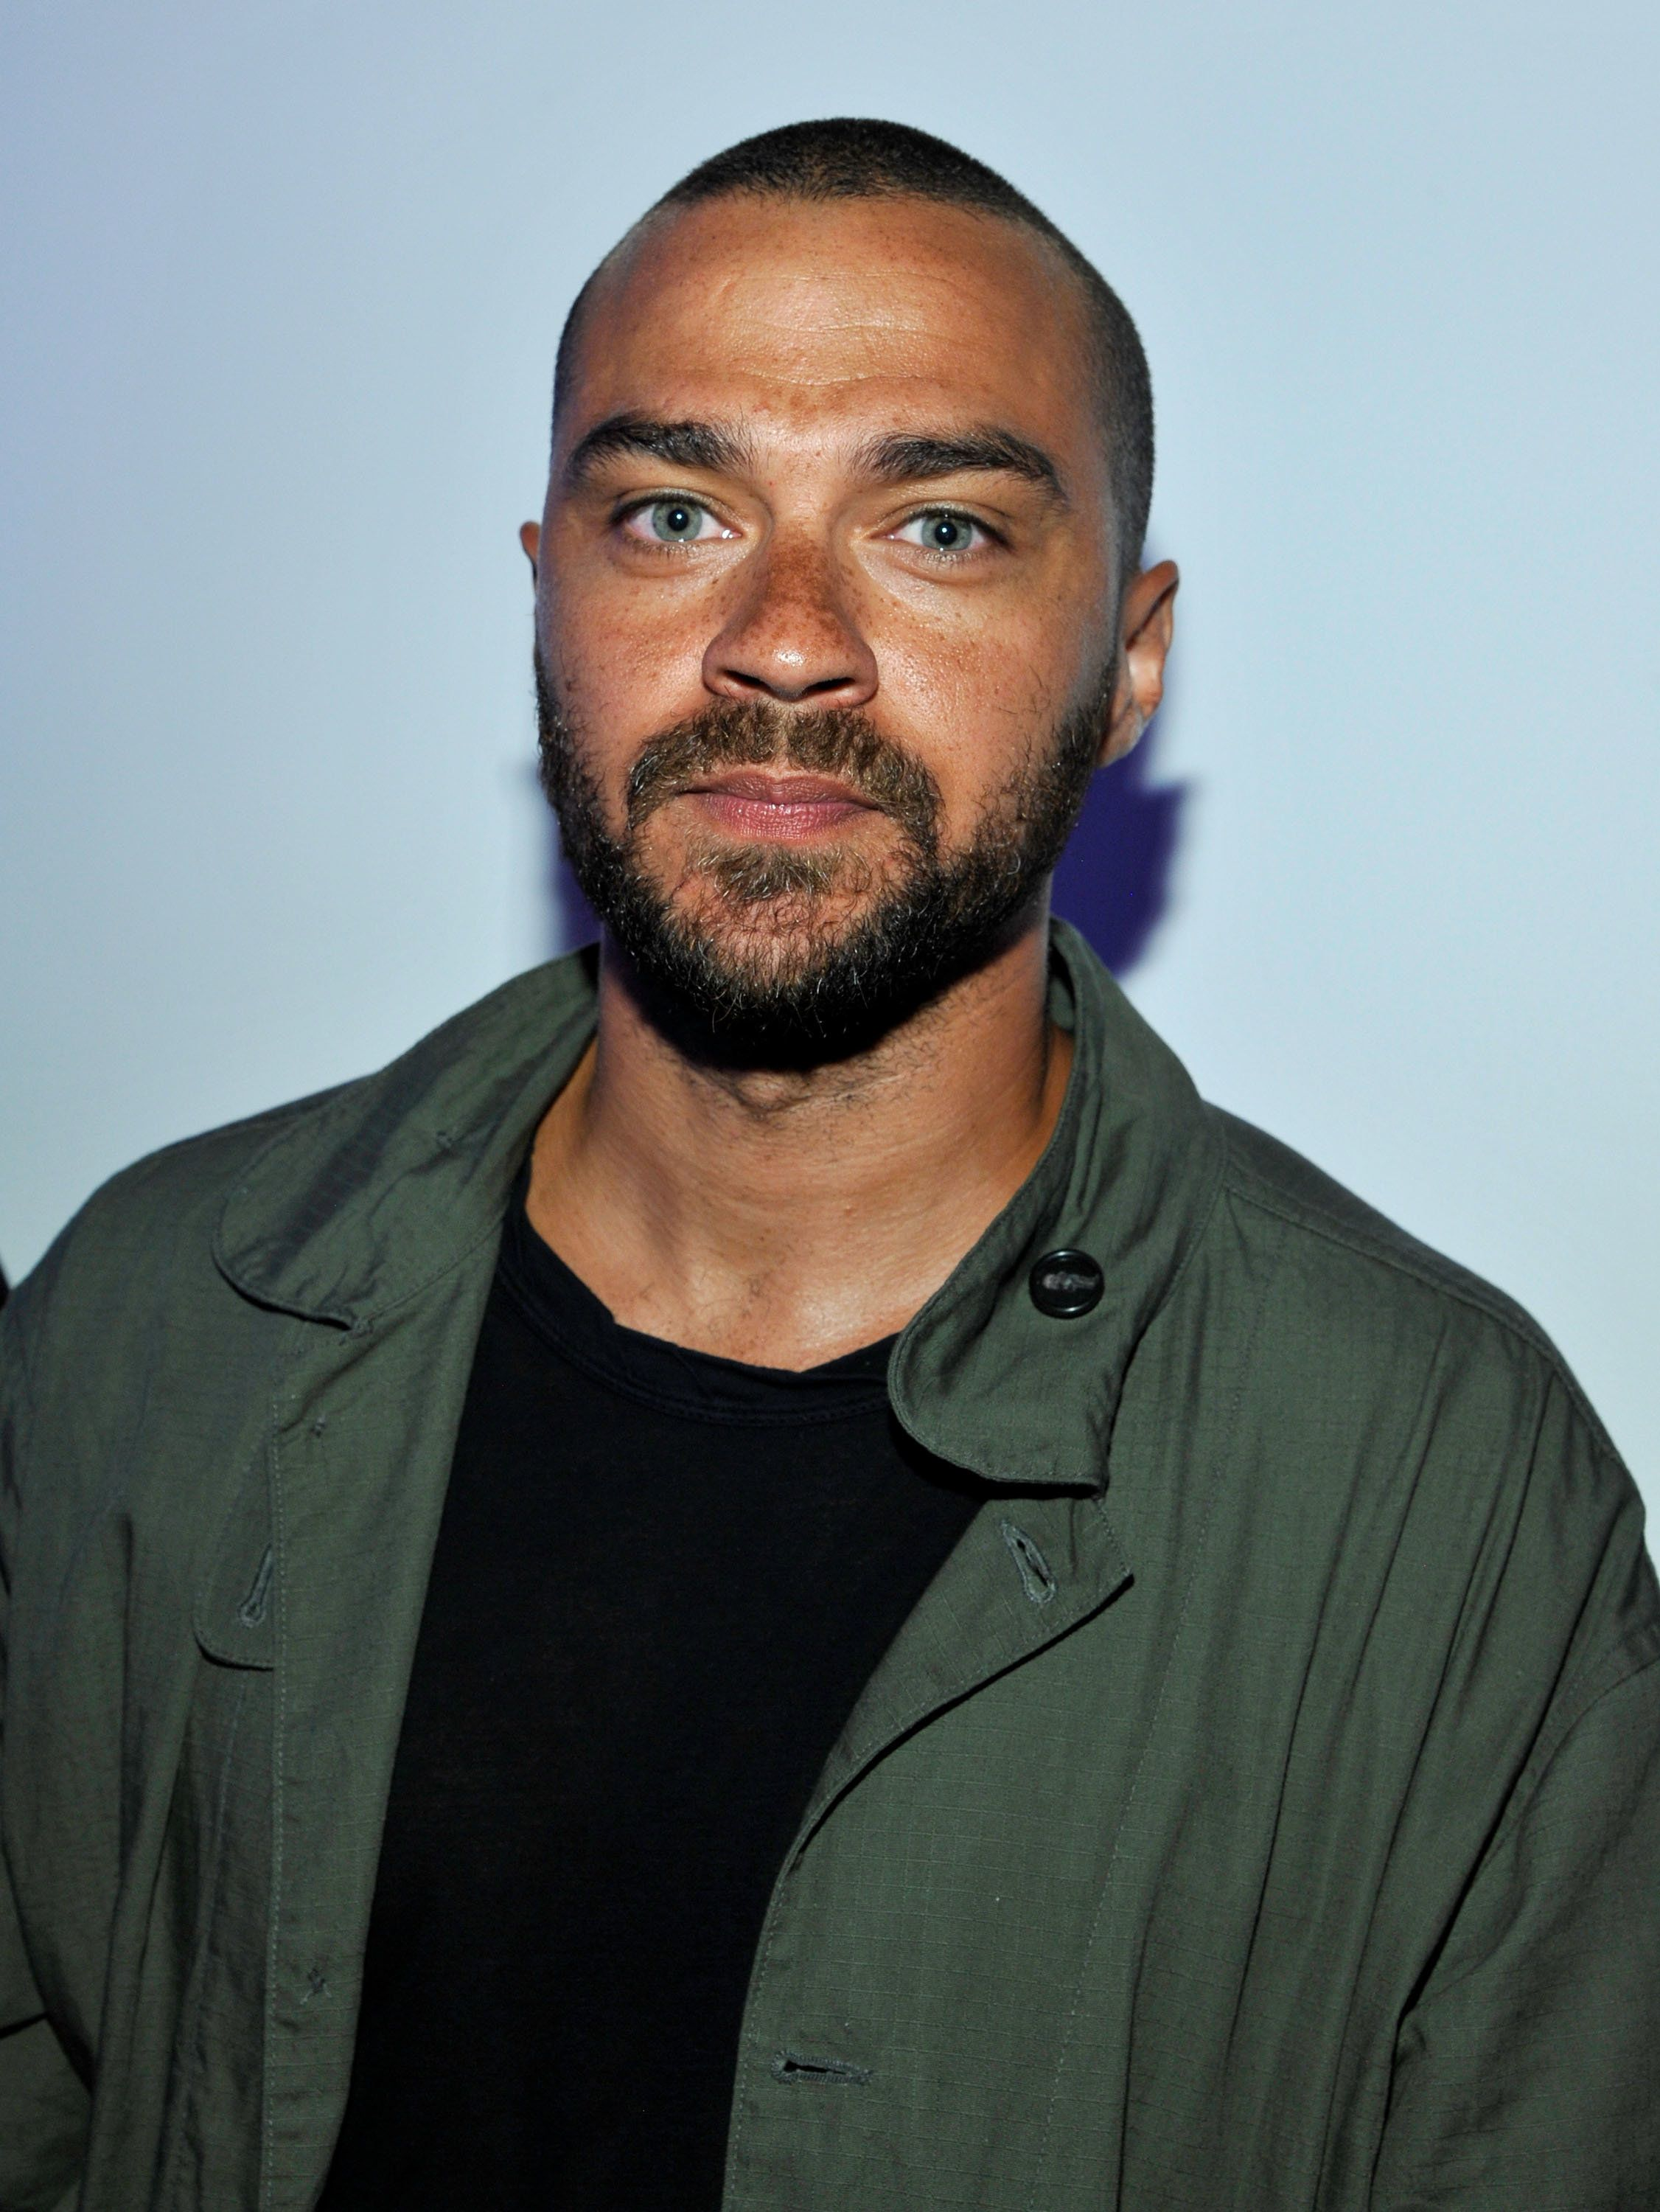 LOS ANGELES, CA - JULY 20:  Actor Jesse Williams attends HBO's 'Ballers' Season 3 Pop-Up Experience on July 20, 2017 in Los Angeles, California.  (Photo by John Sciulli/Getty Images for HBO)